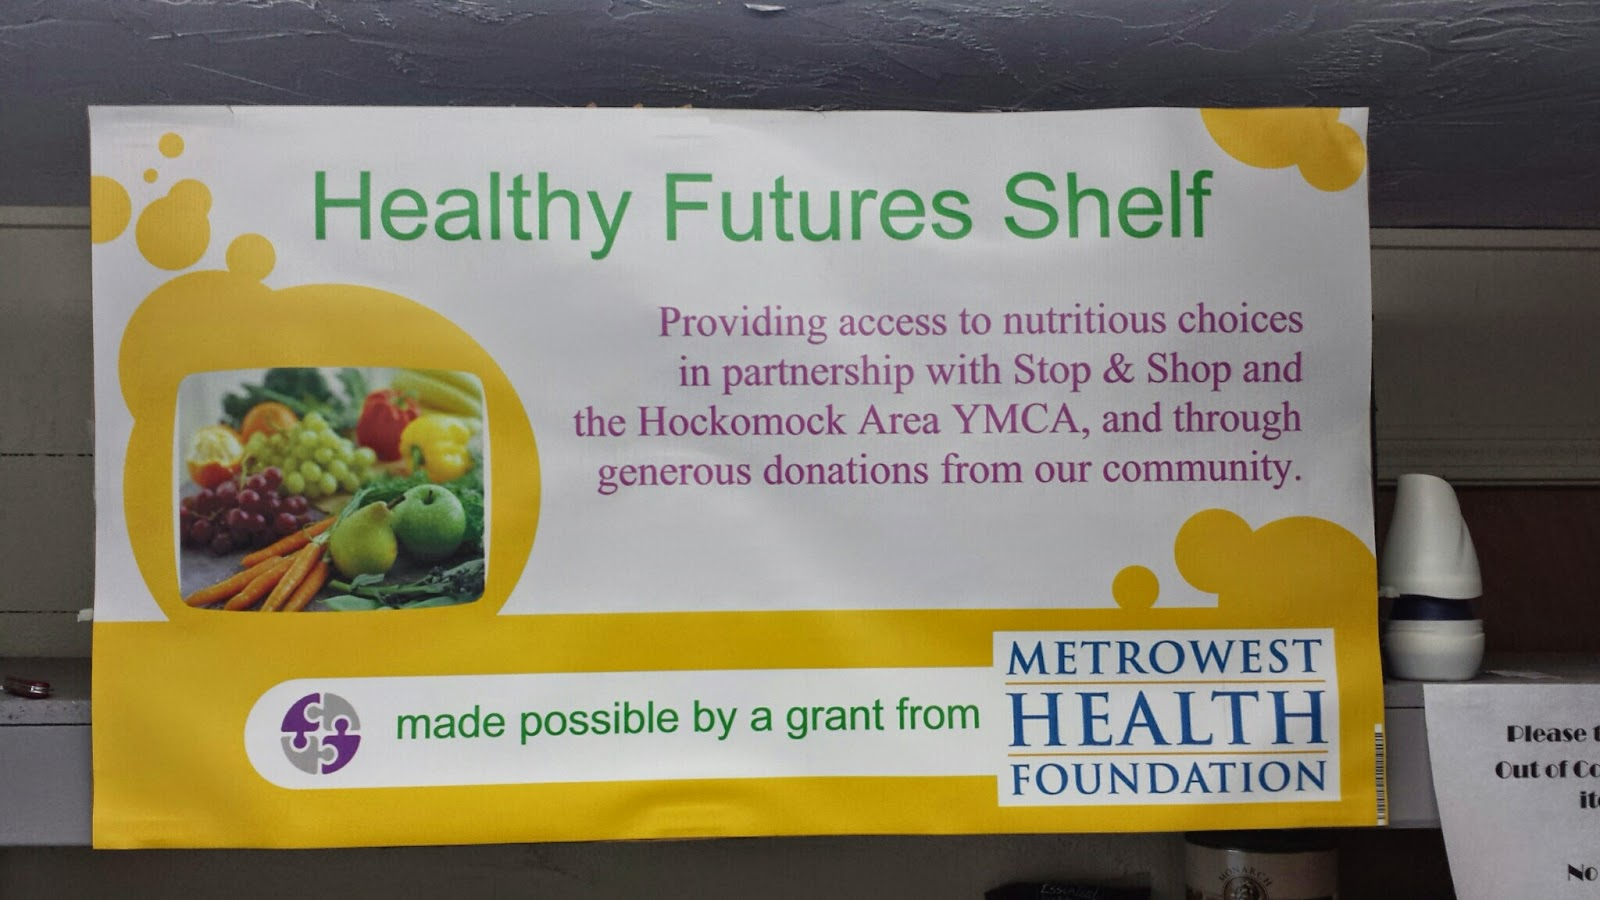 Healthy Futures shelf at the Franklin Food Pantry